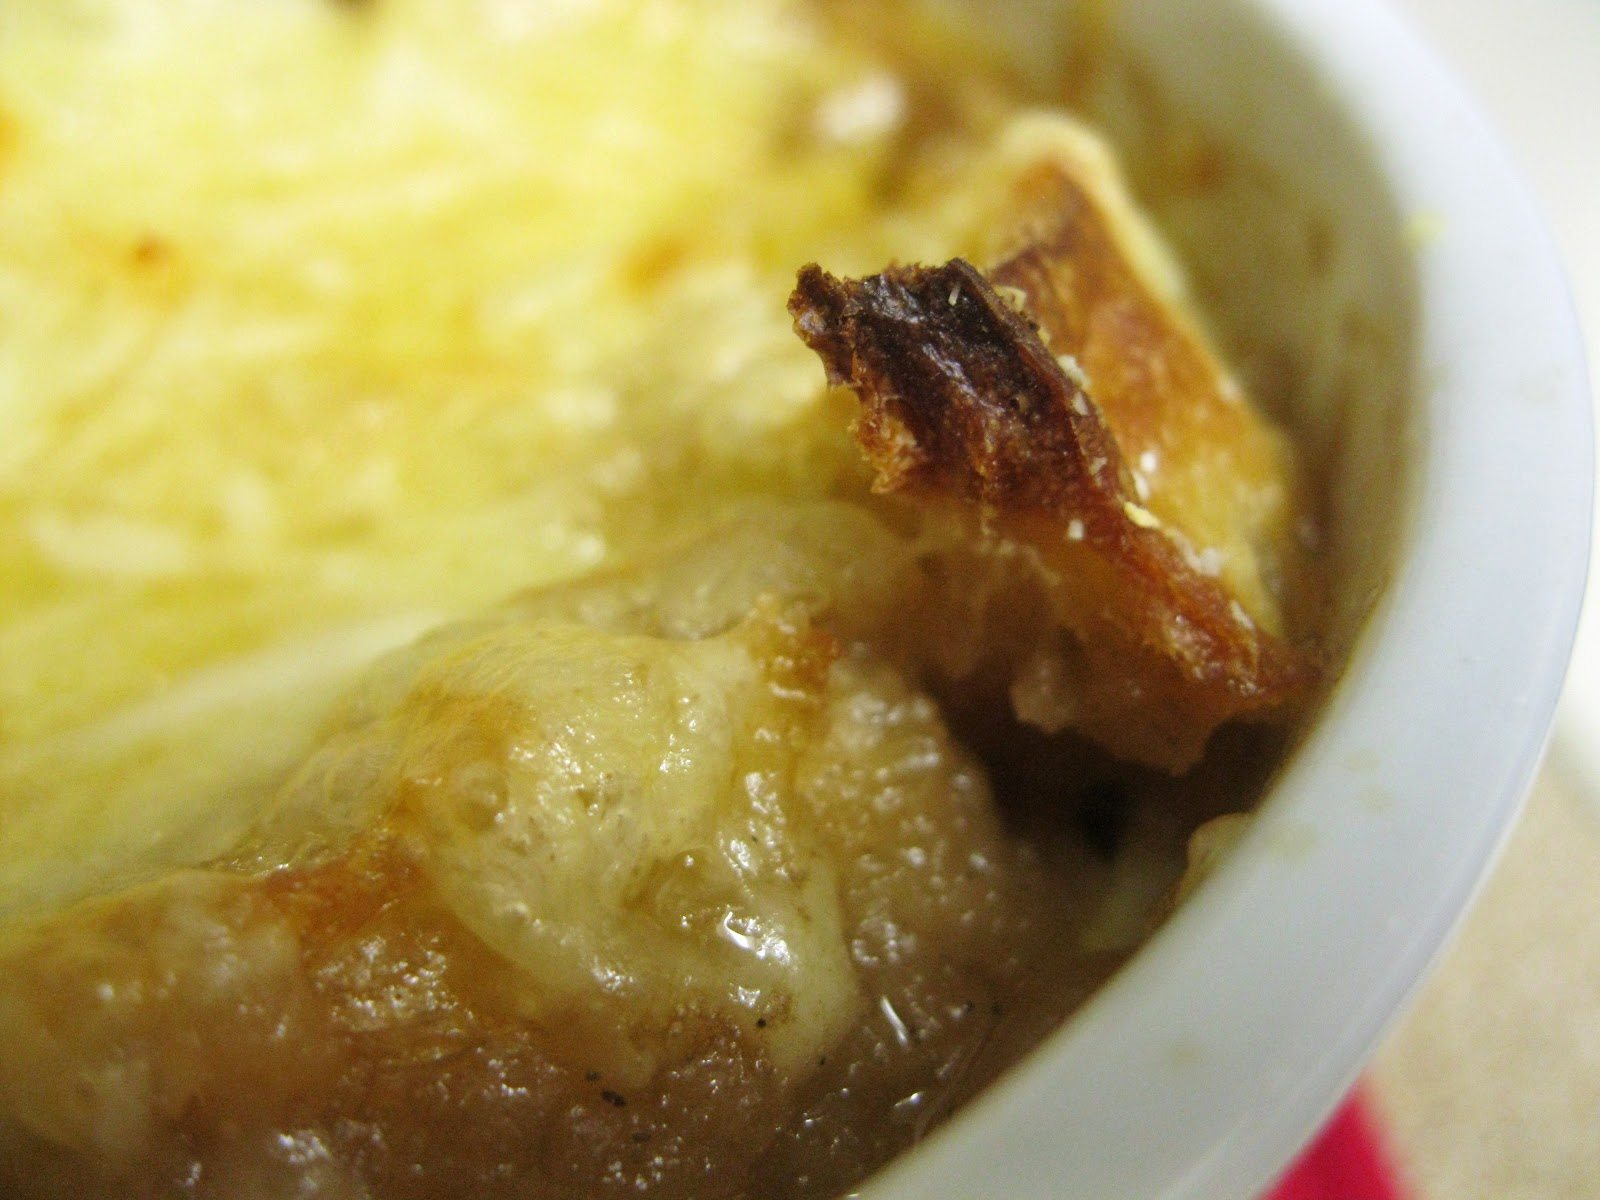 onion soup french onion soup french onion soup french onion soup ...